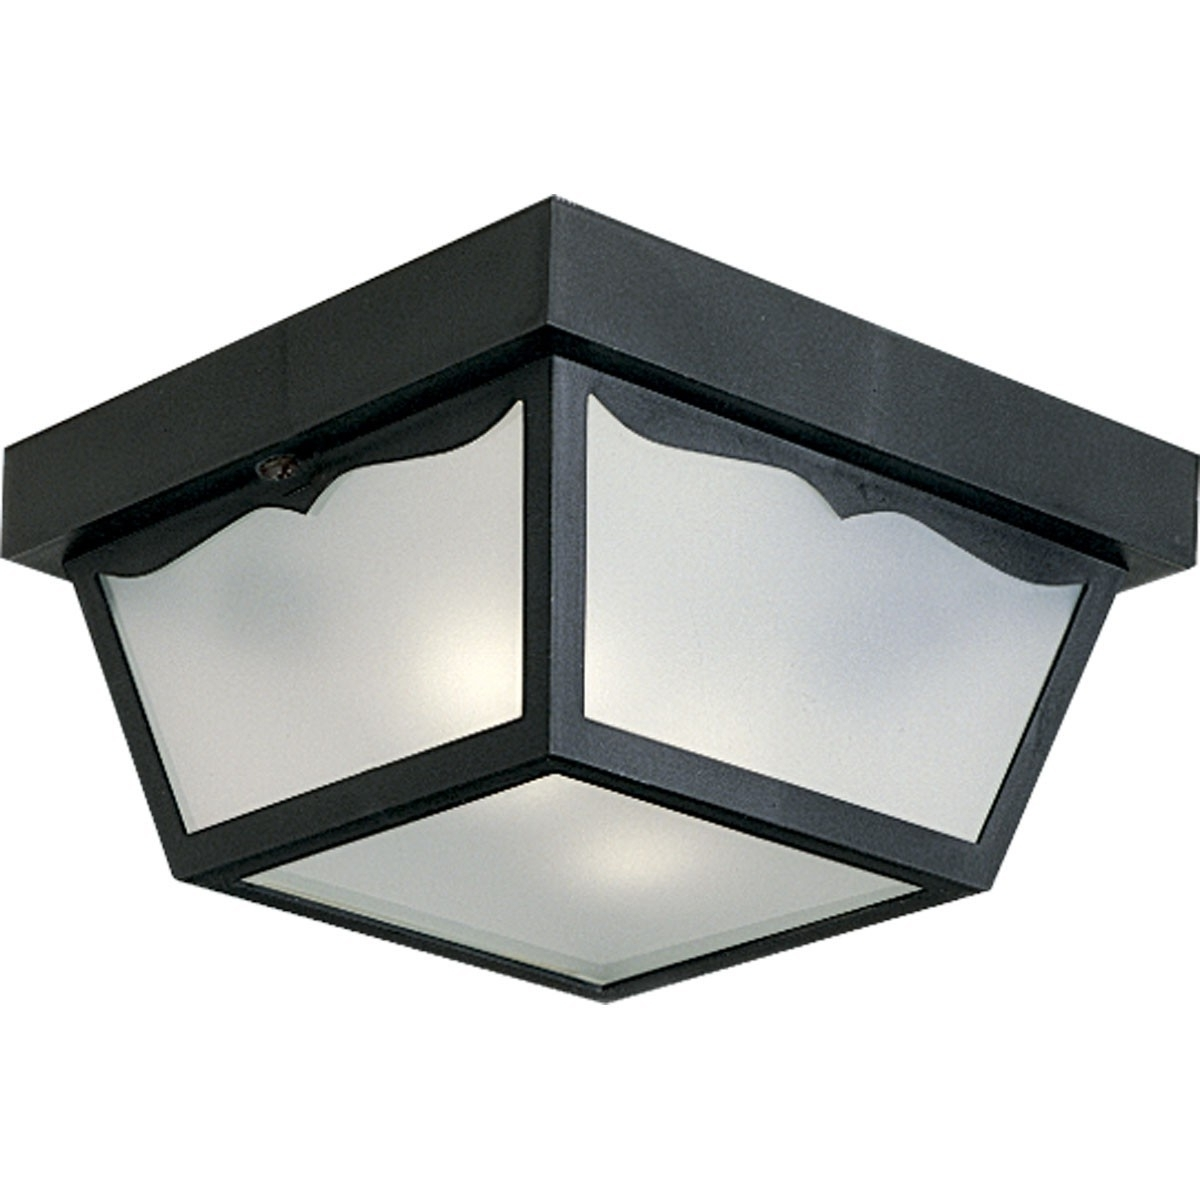 60W Outdoor Flush Mount Non Metallic Ceiling Light – Progress Within Latest Cheap Outdoor Ceiling Lights (Gallery 5 of 20)